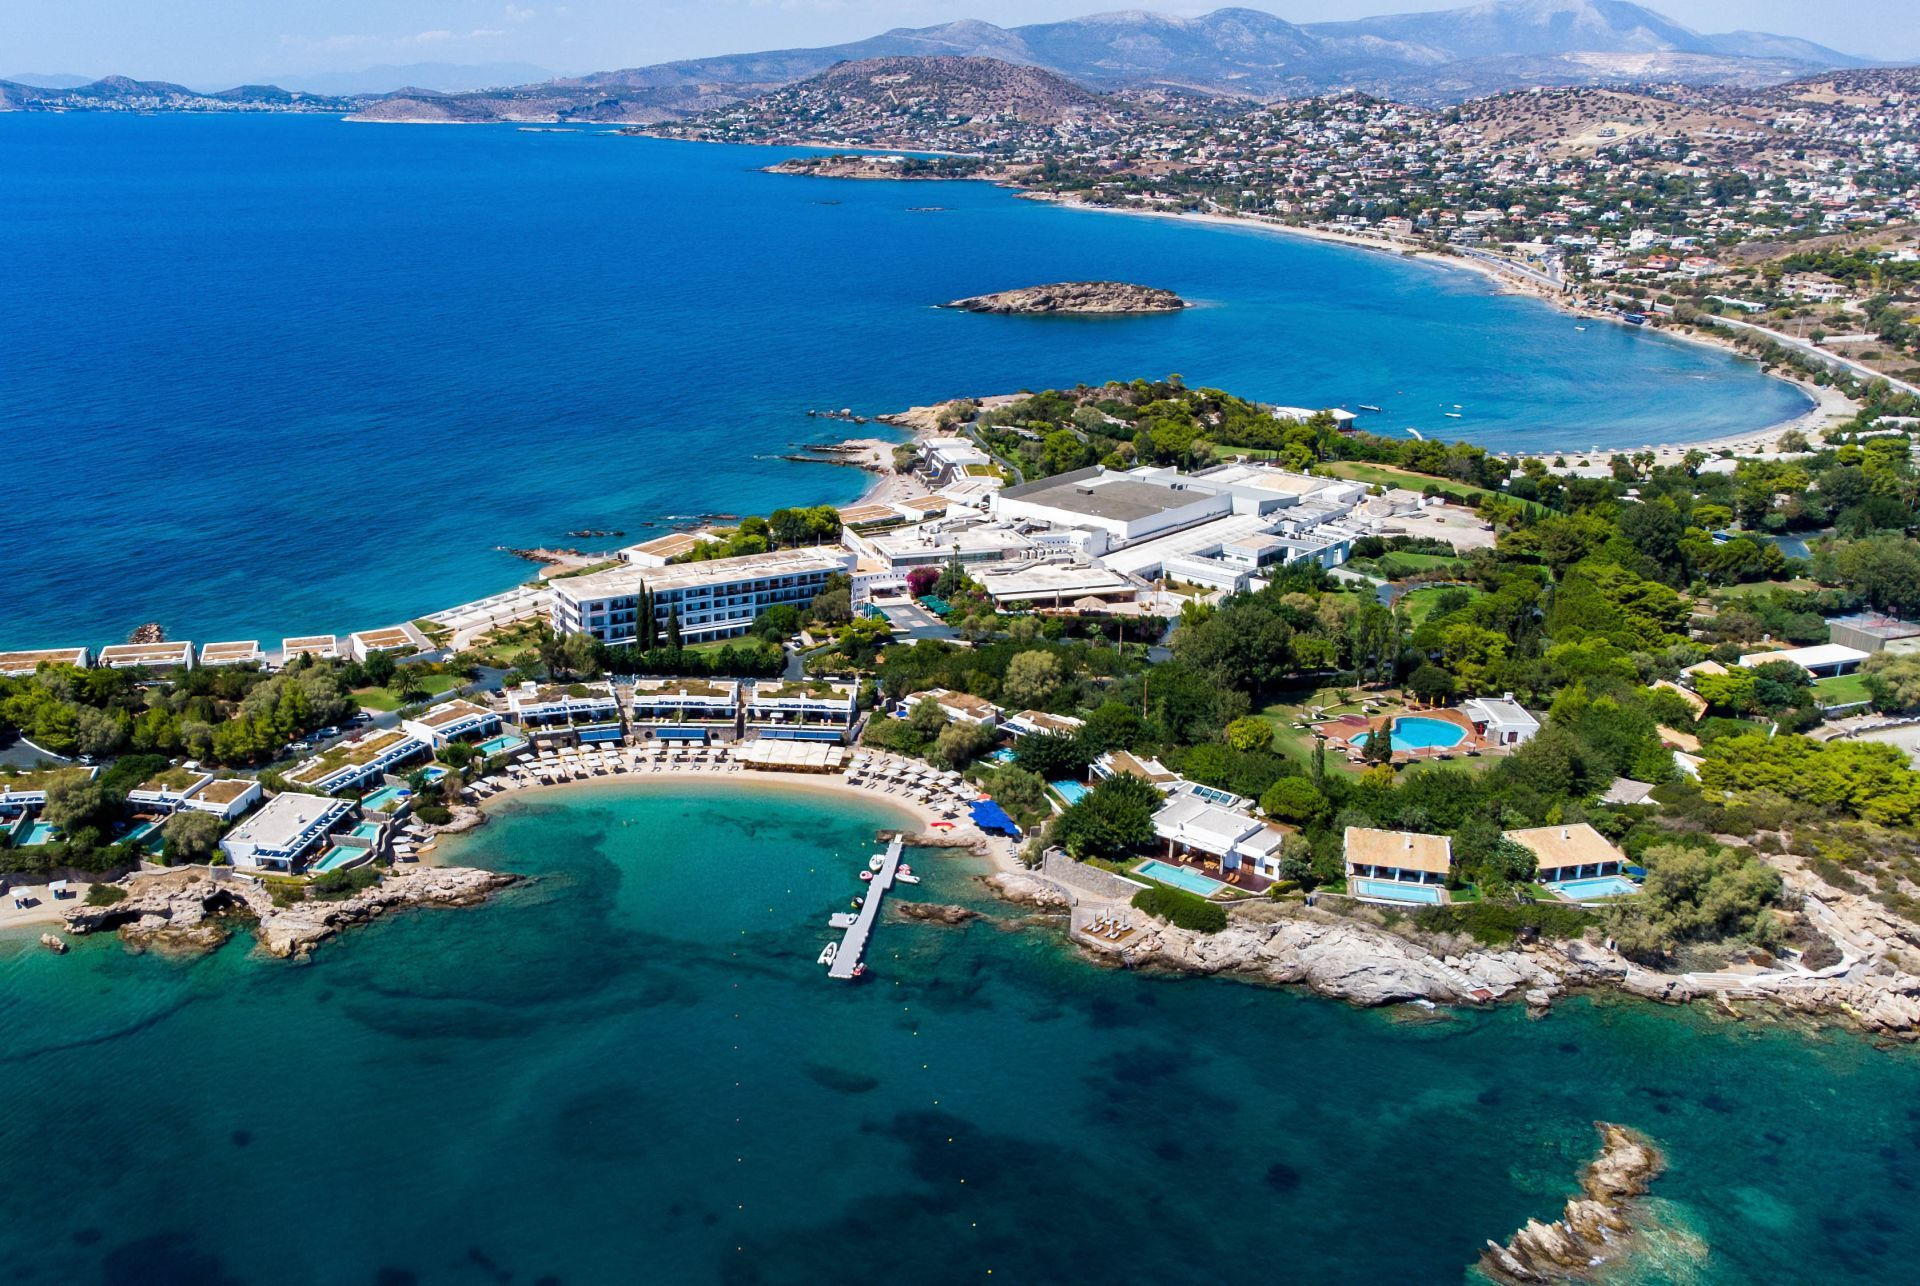 Accommodation and hotels in Athens